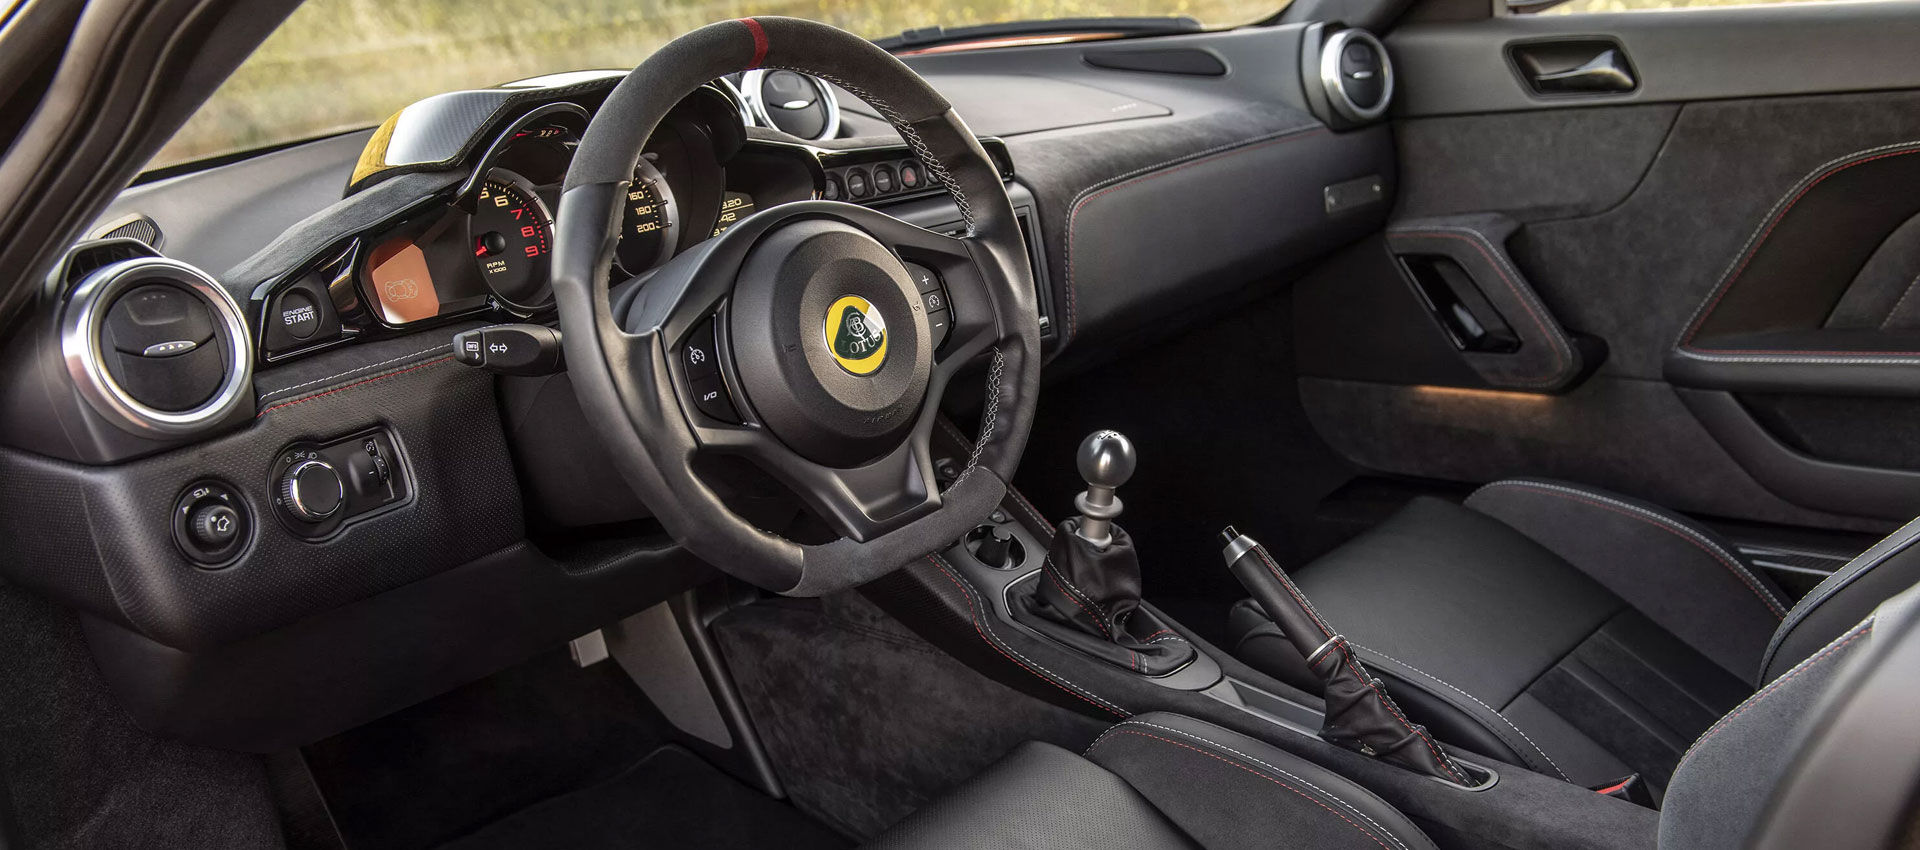 2020 Lotus Evora GT Interior